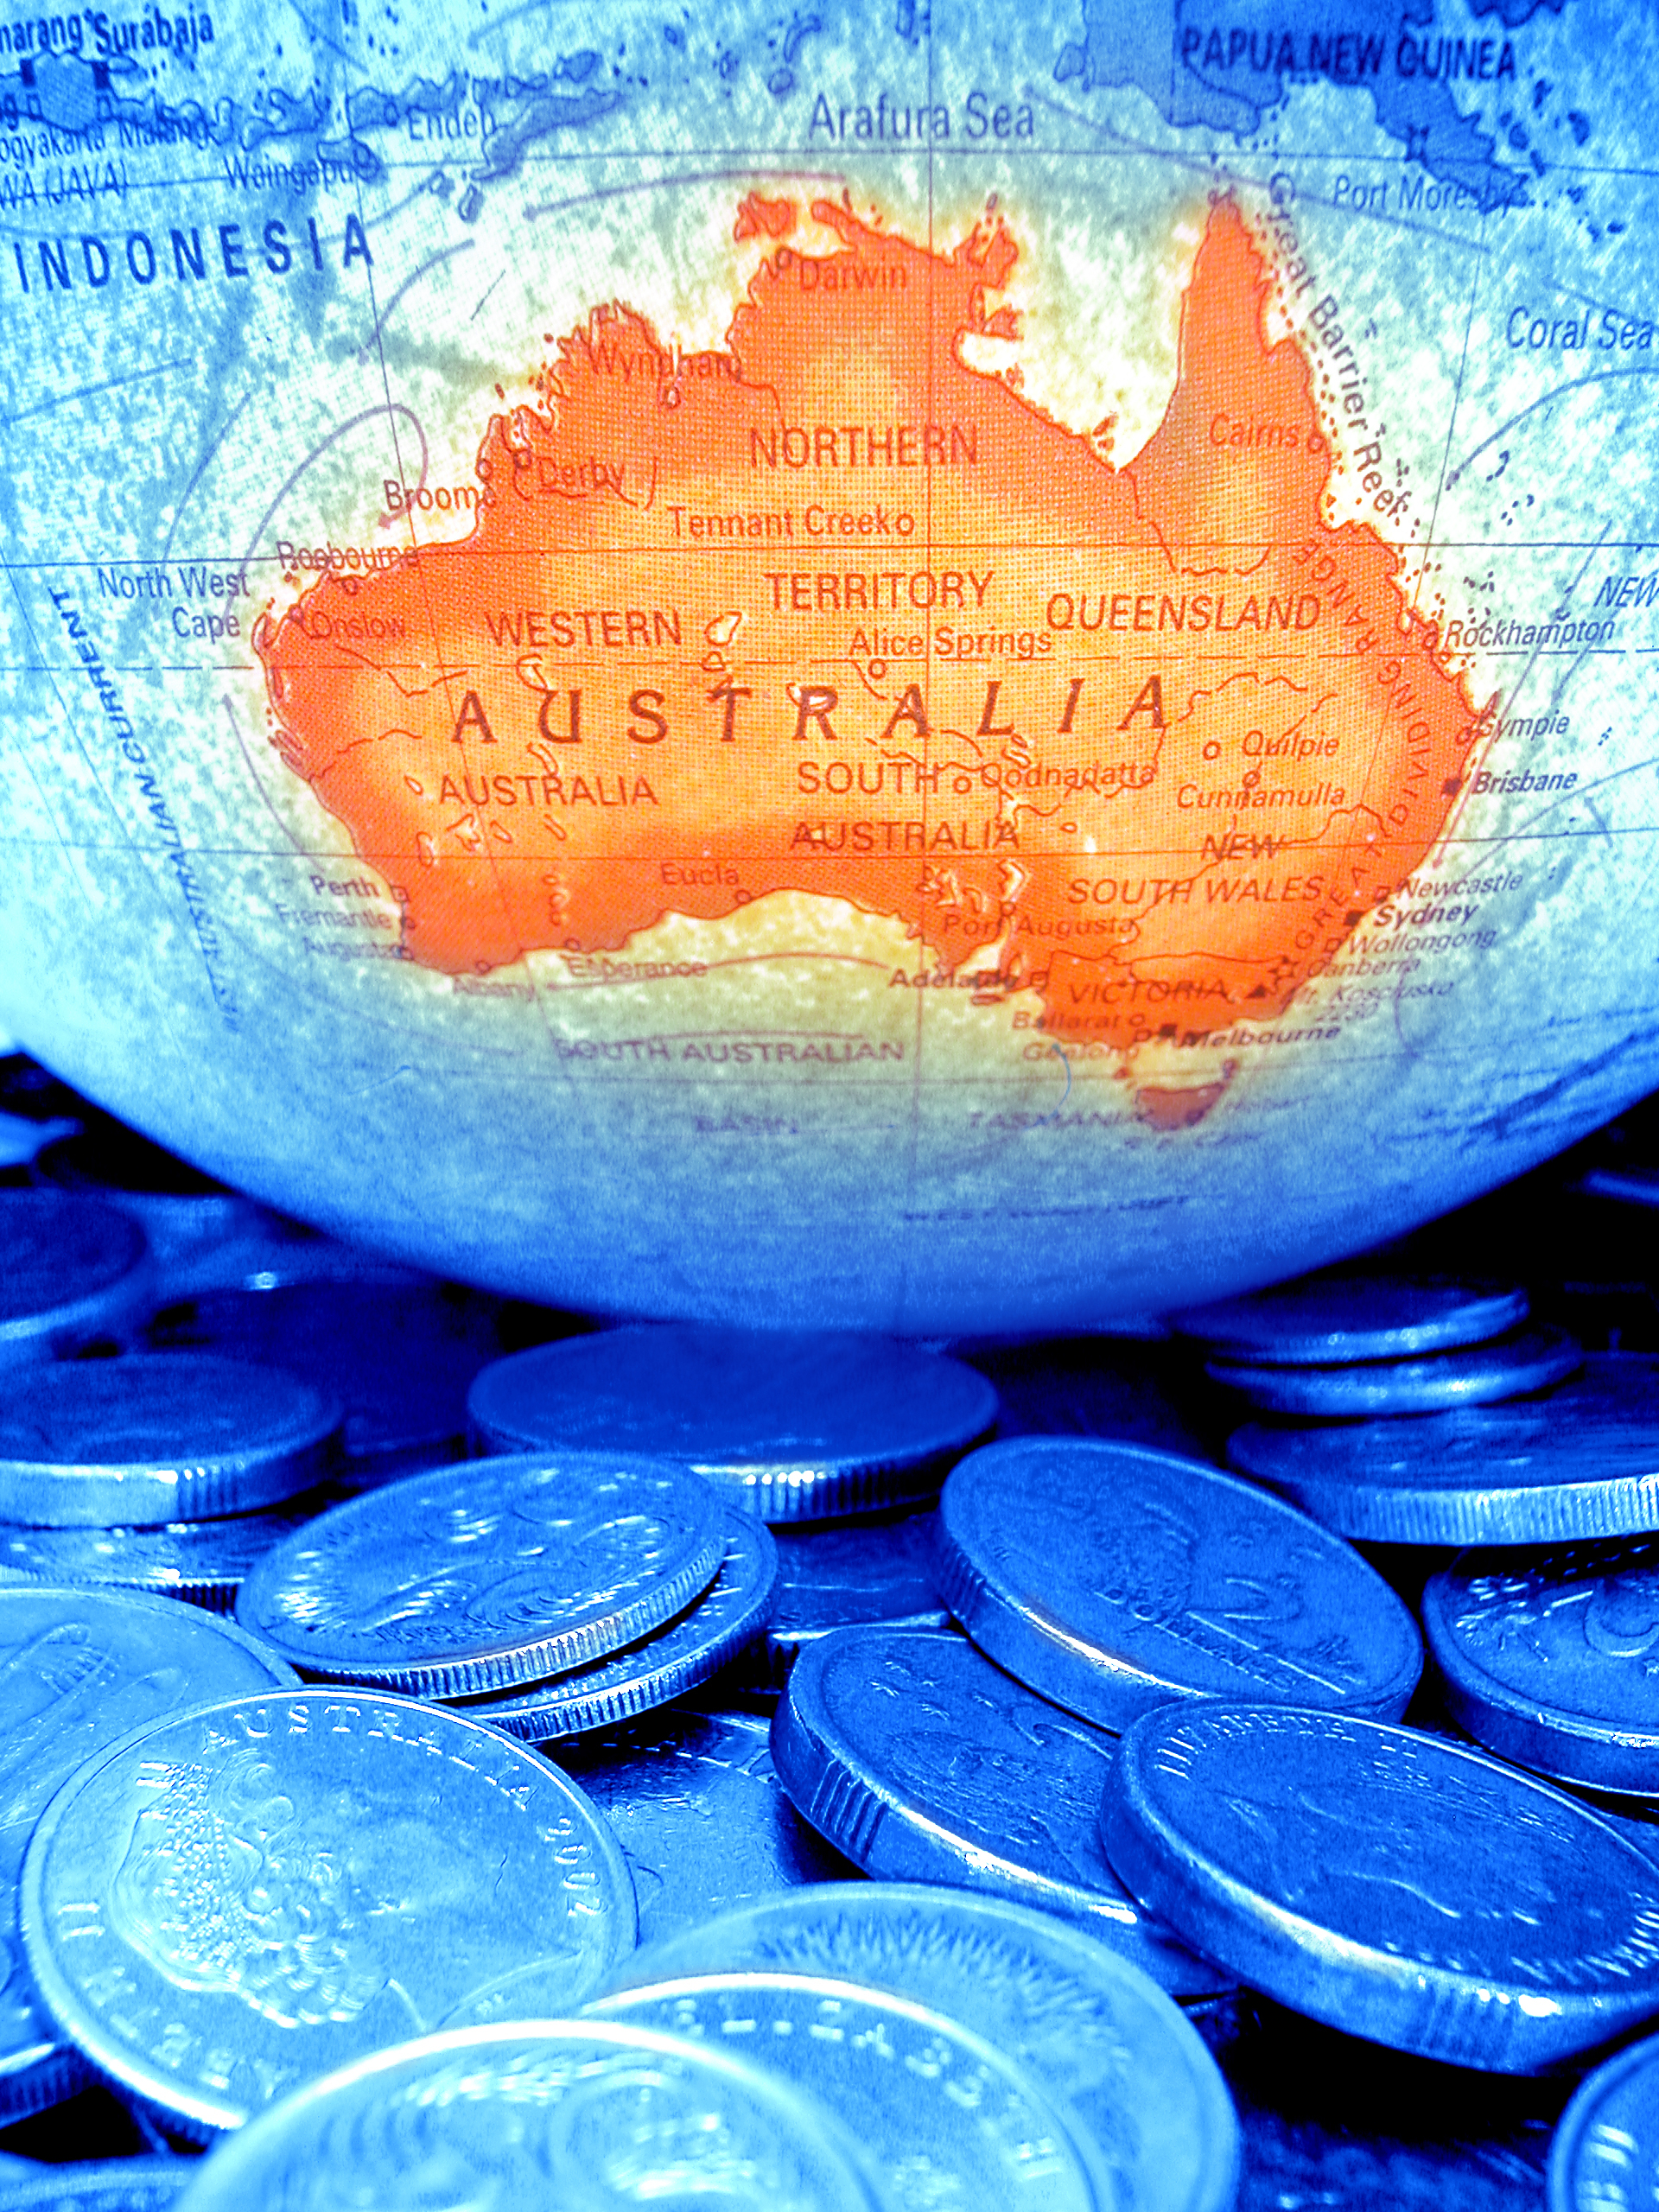 Image of Australian money and a globe.